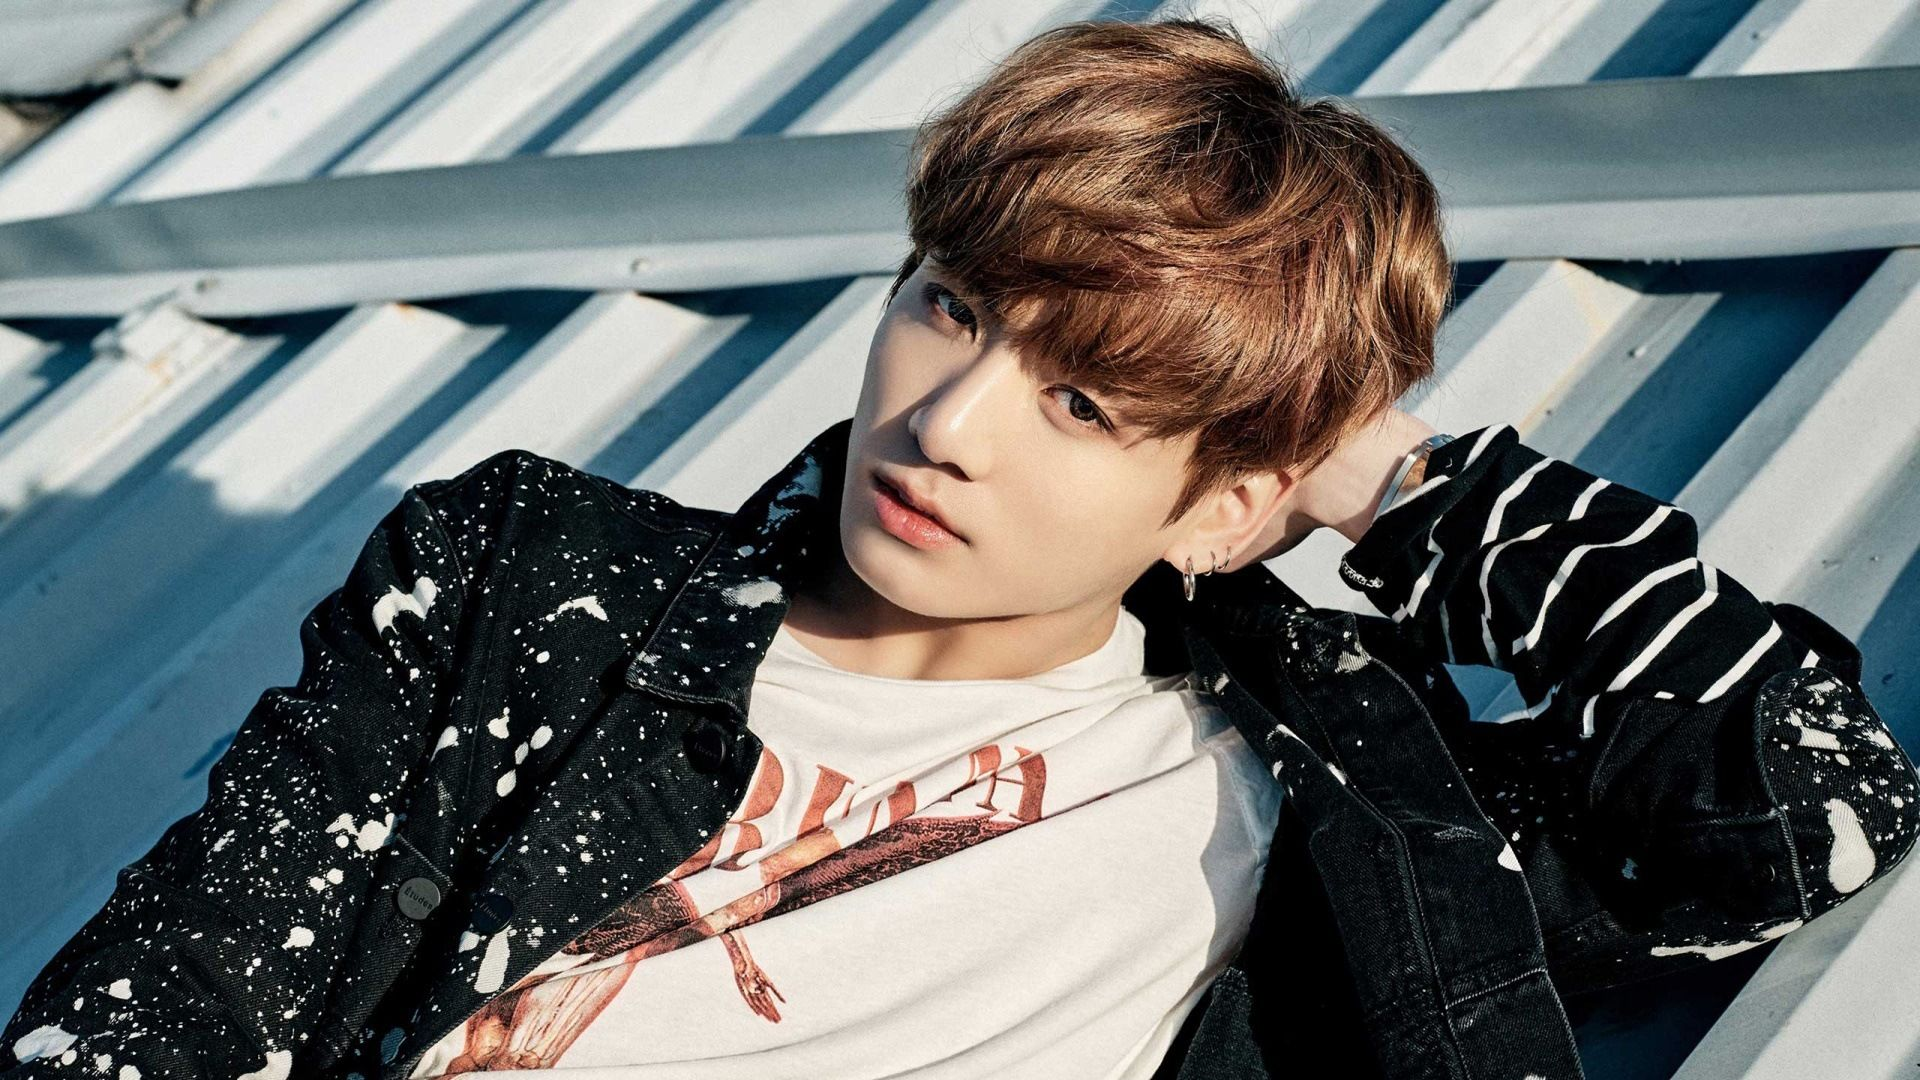 BTS Jungkook Wallpapers   Top BTS Jungkook Backgrounds 1920x1080